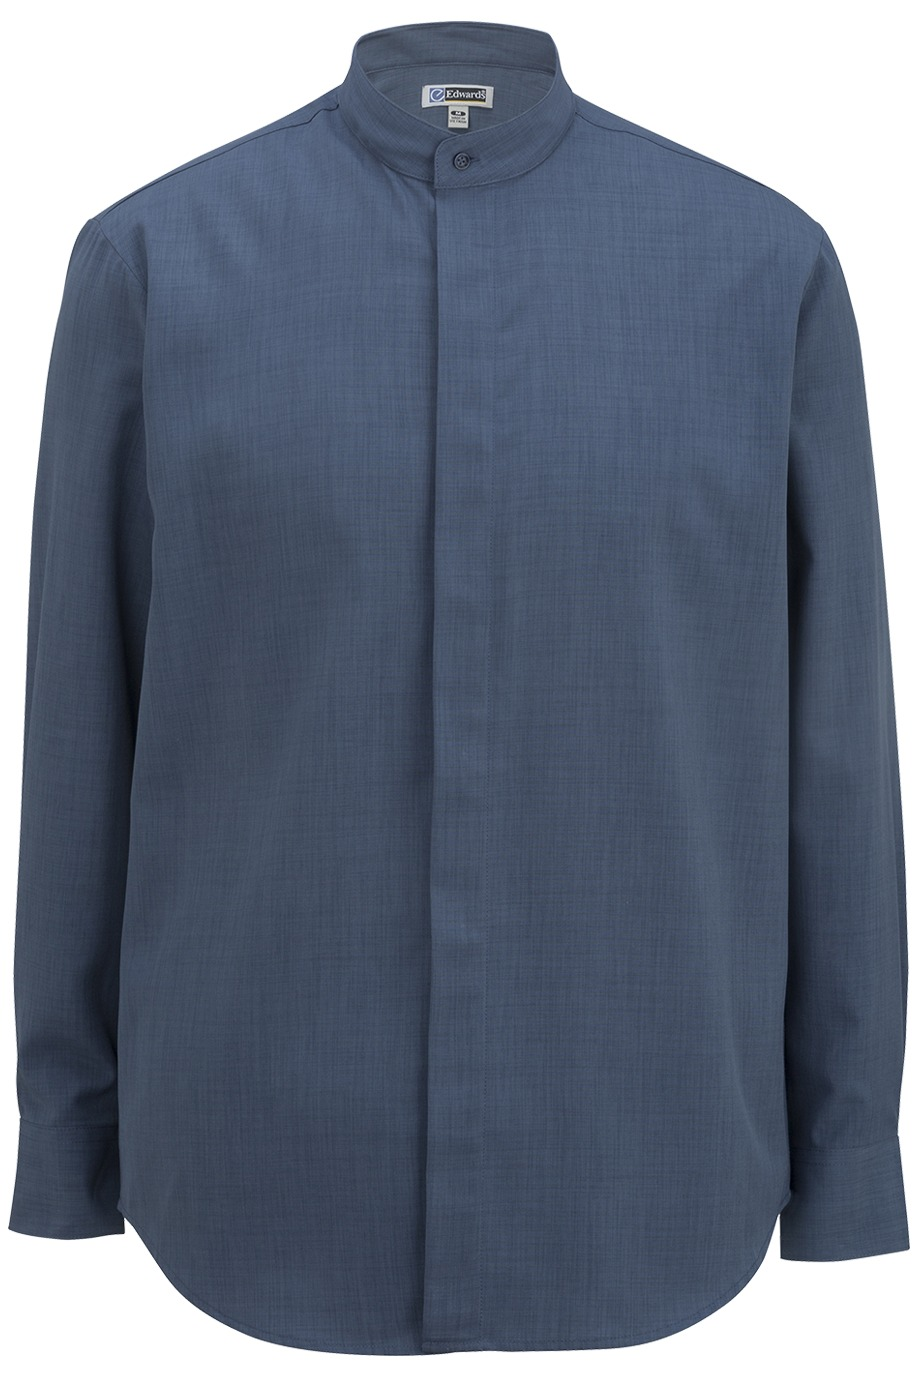 Edwards Garment 1392 - Batiste Banded Collar Shirt